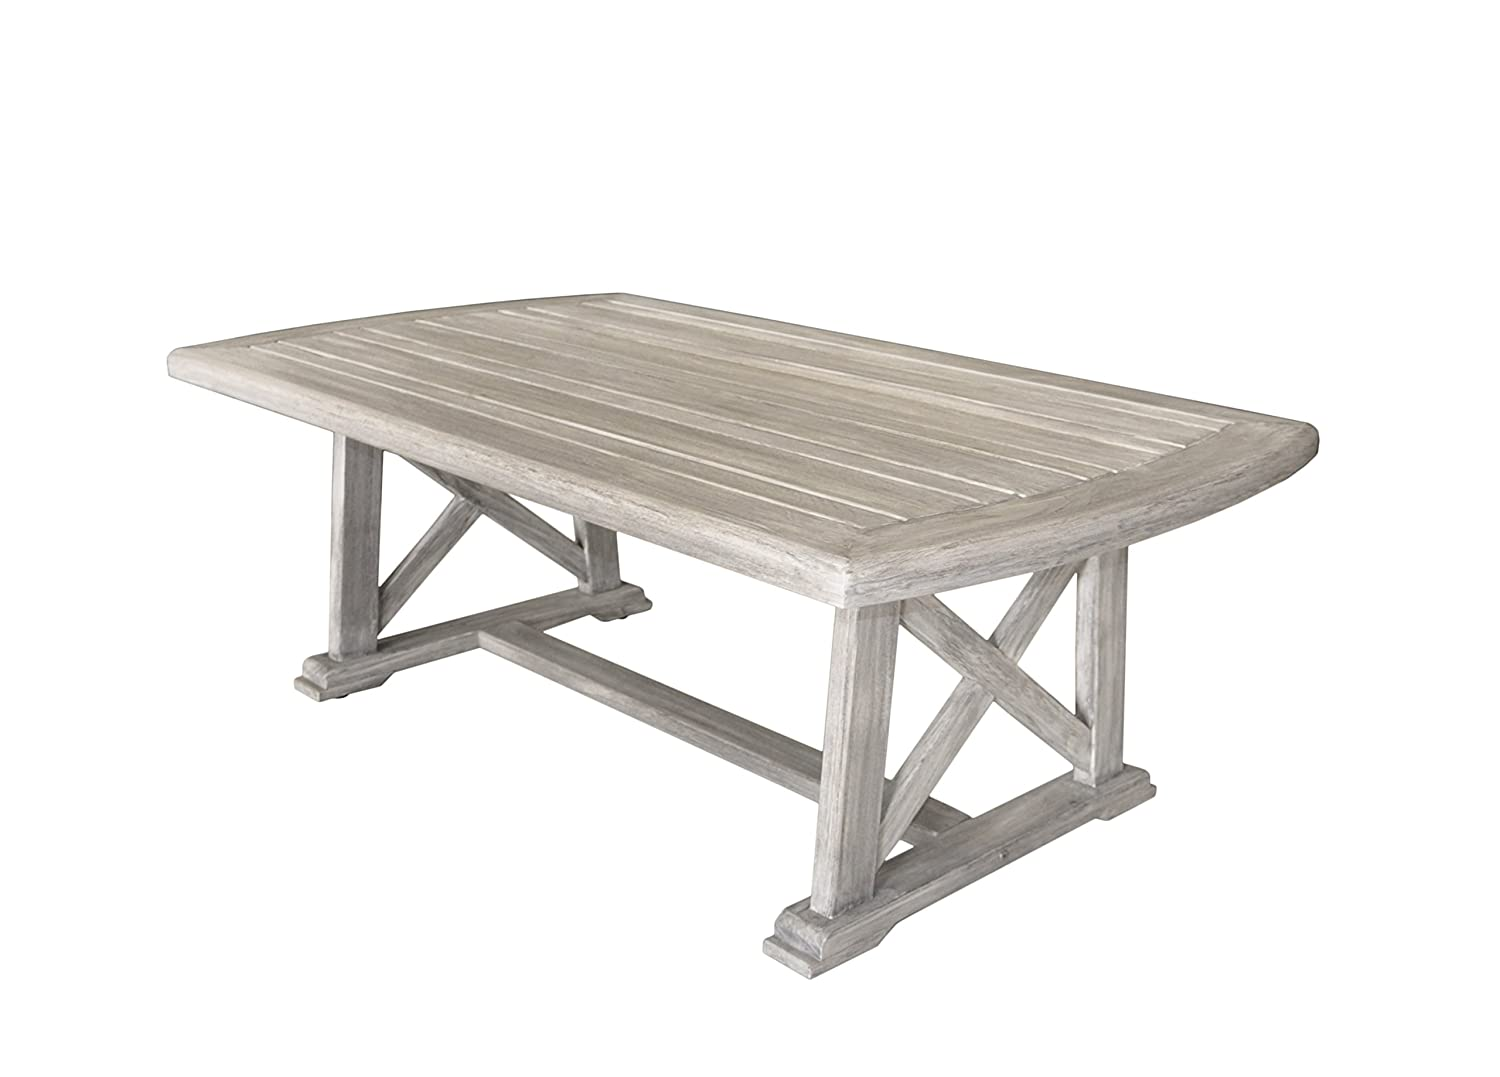 Amazon.com : Courtyard Casual Driftwood Gray Teak Surf Side Outdoor Coffee  Table : Garden & Outdoor - Amazon.com : Courtyard Casual Driftwood Gray Teak Surf Side Outdoor